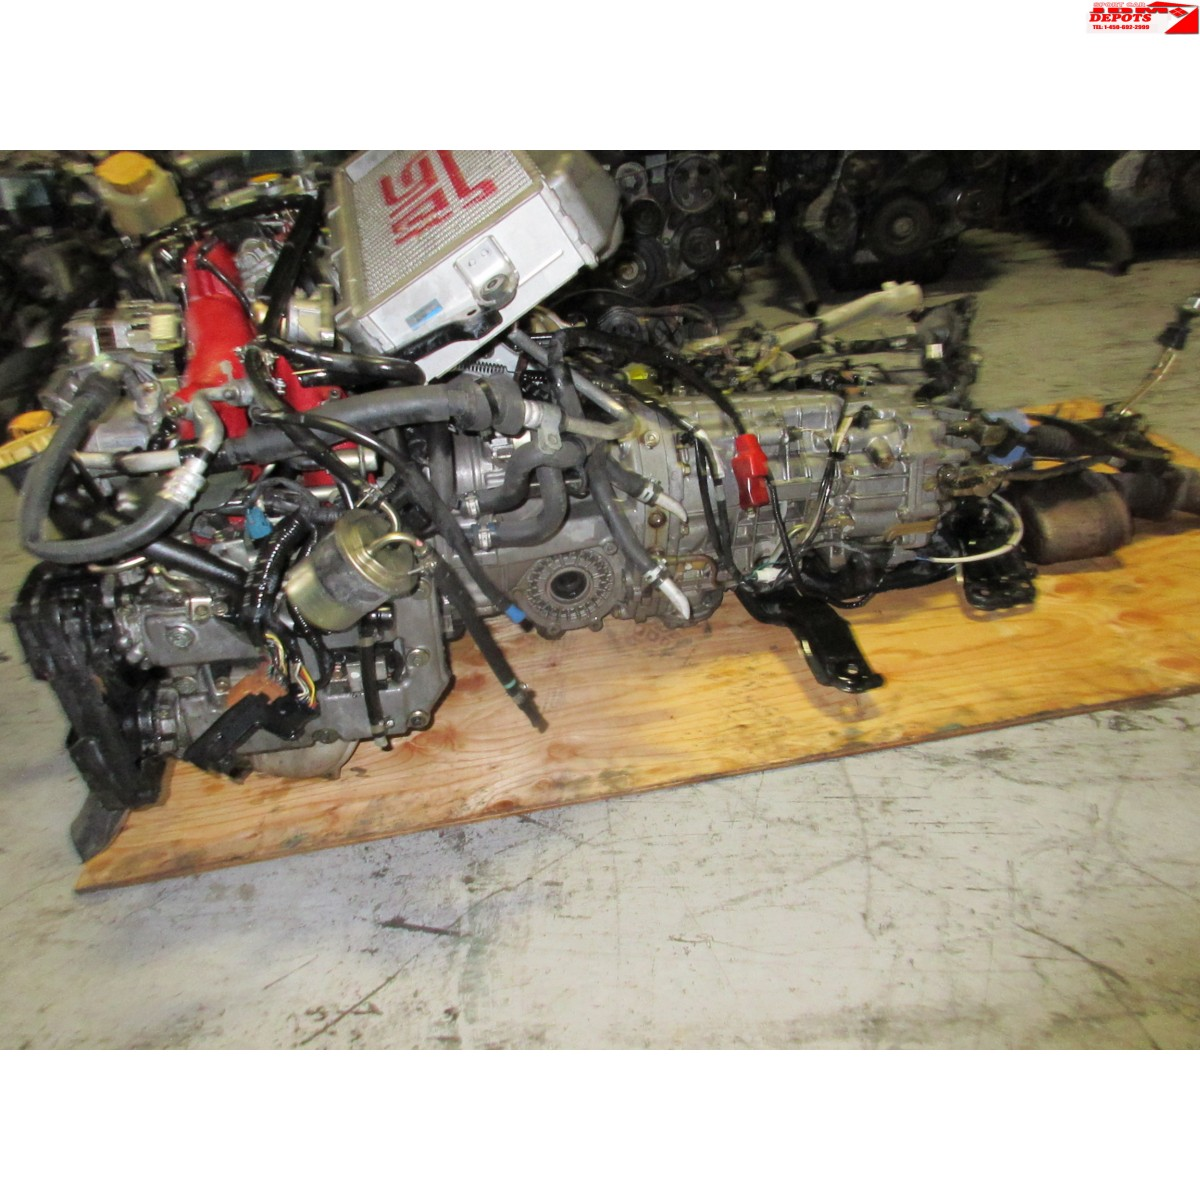 YOUR No 1 SOURCE FOR ALL JDM ENGINES, JDM TRANSMISSIONS